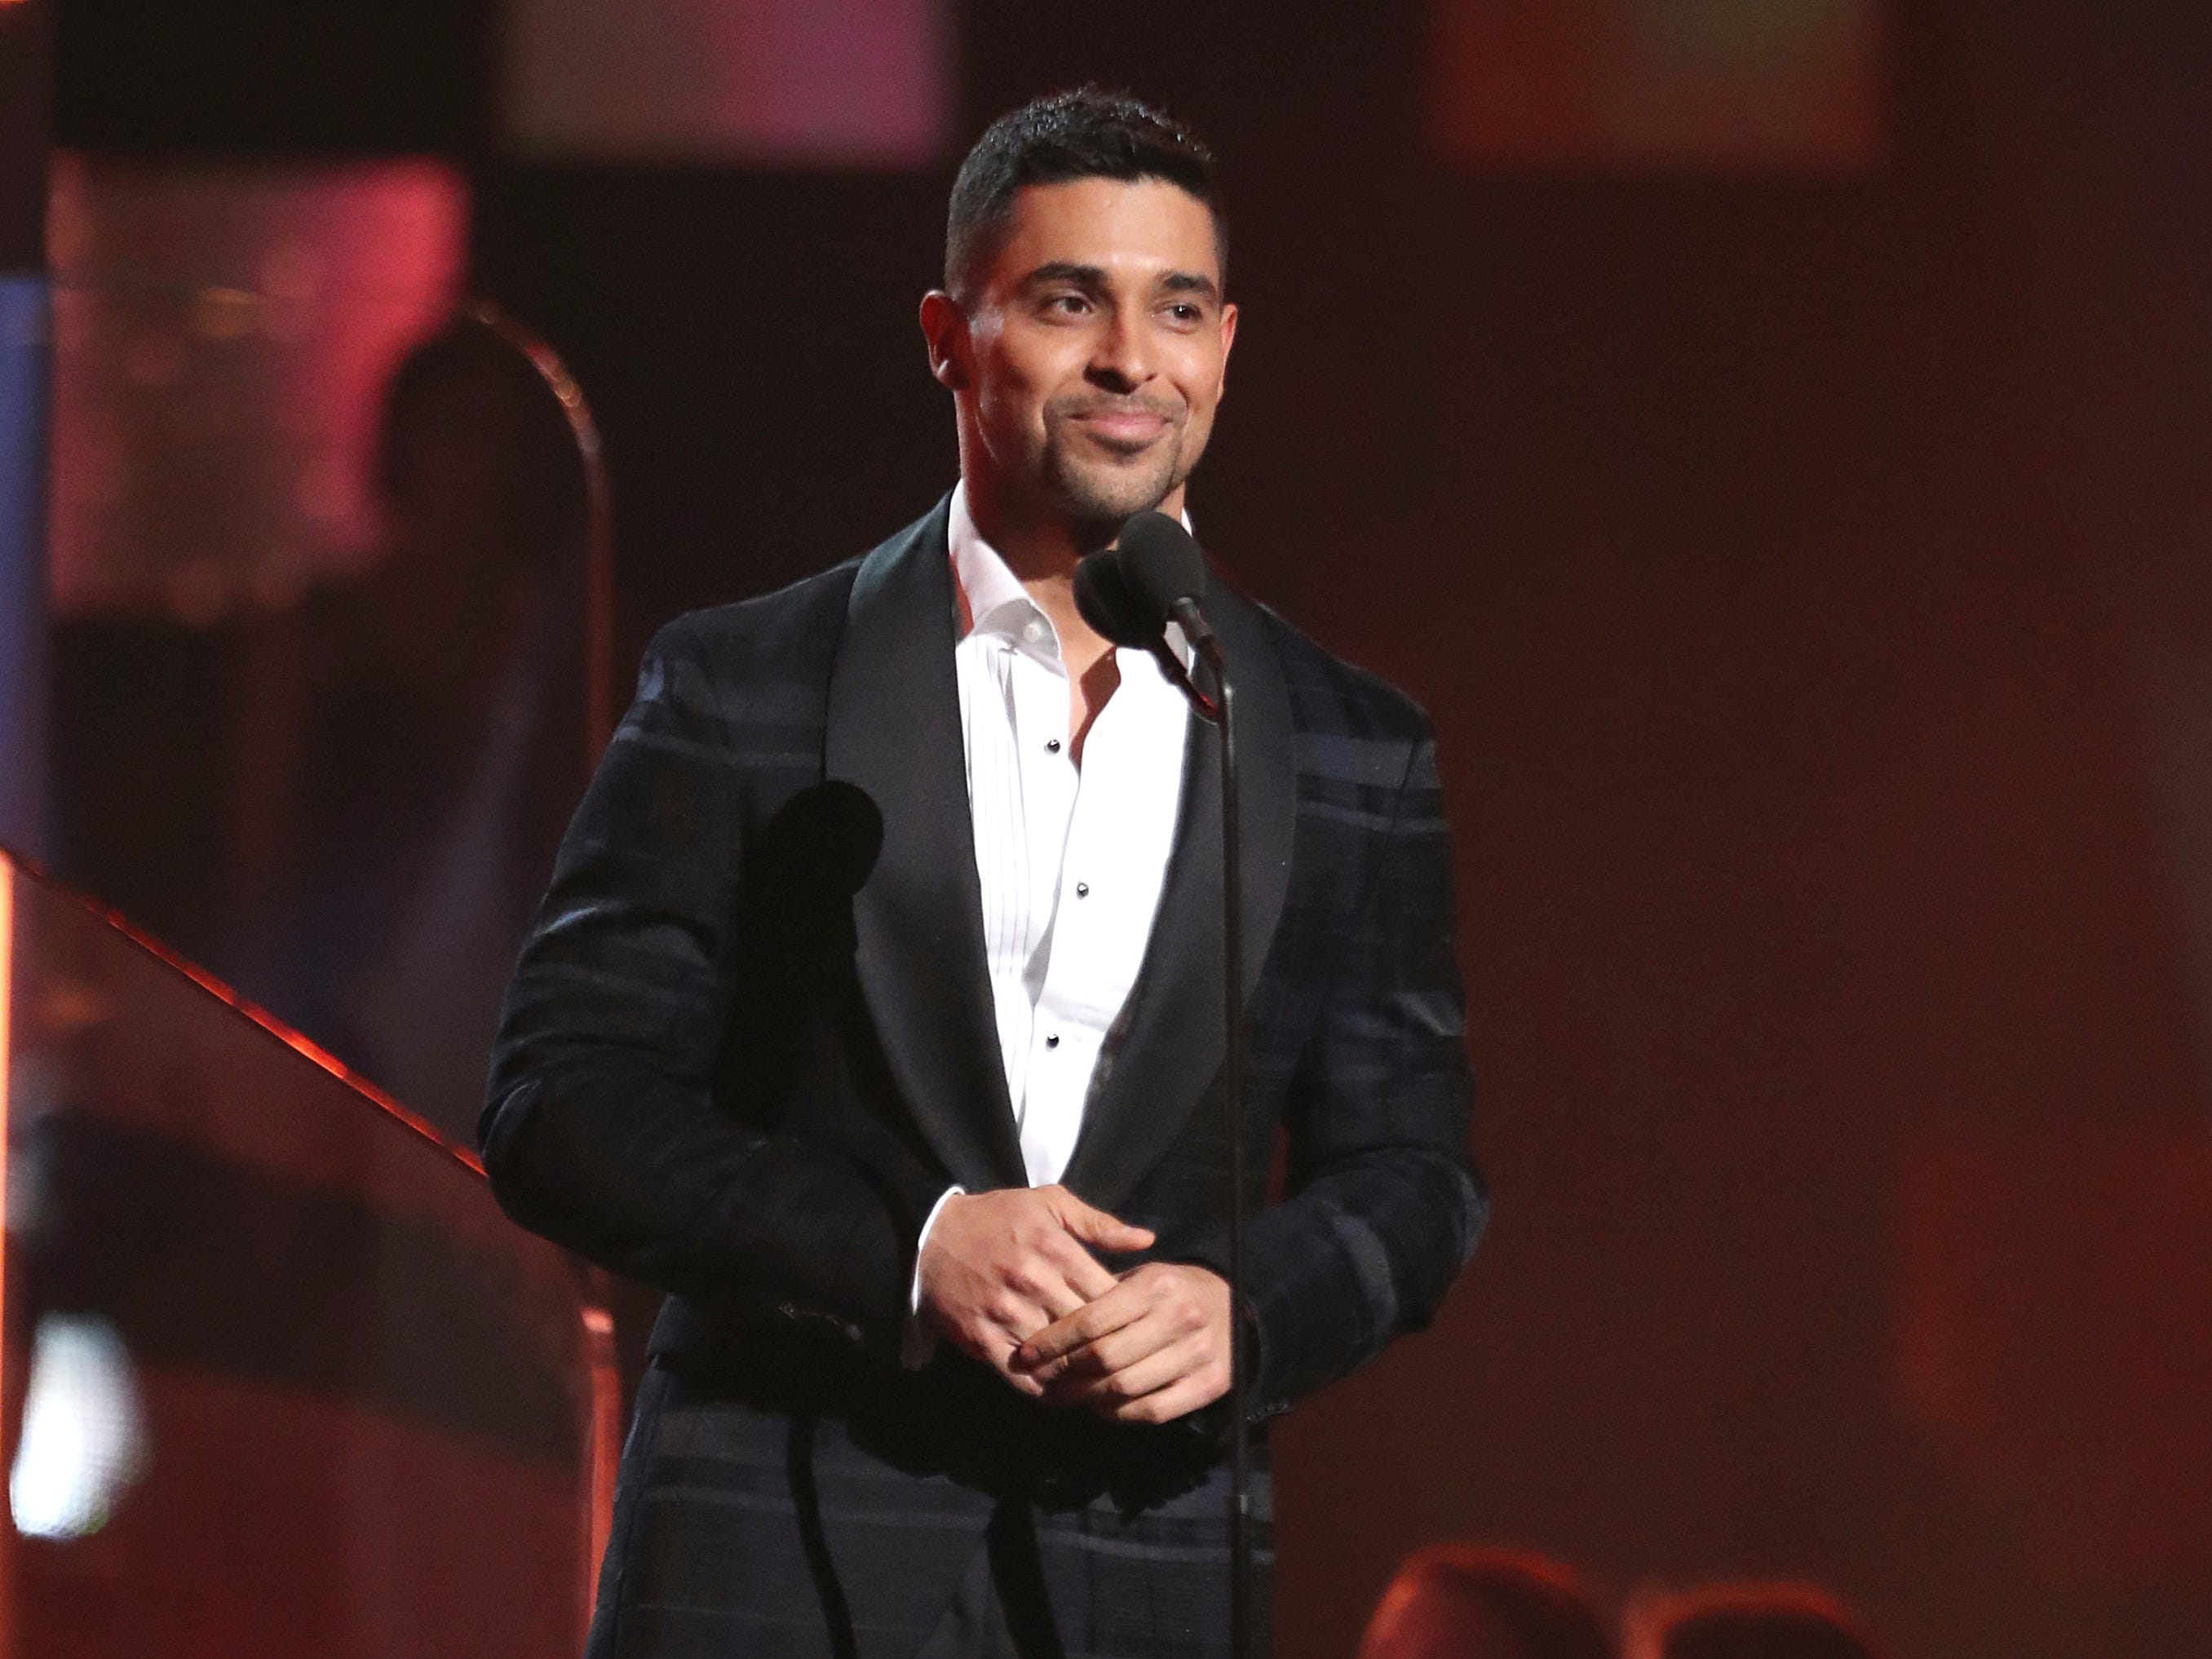 Wilmer Valderrama introduces a performance by Dua Lipa and St. Vincent at the 61st annual Grammy Awards on Sunday, Feb. 10, 2019, in Los Angeles.